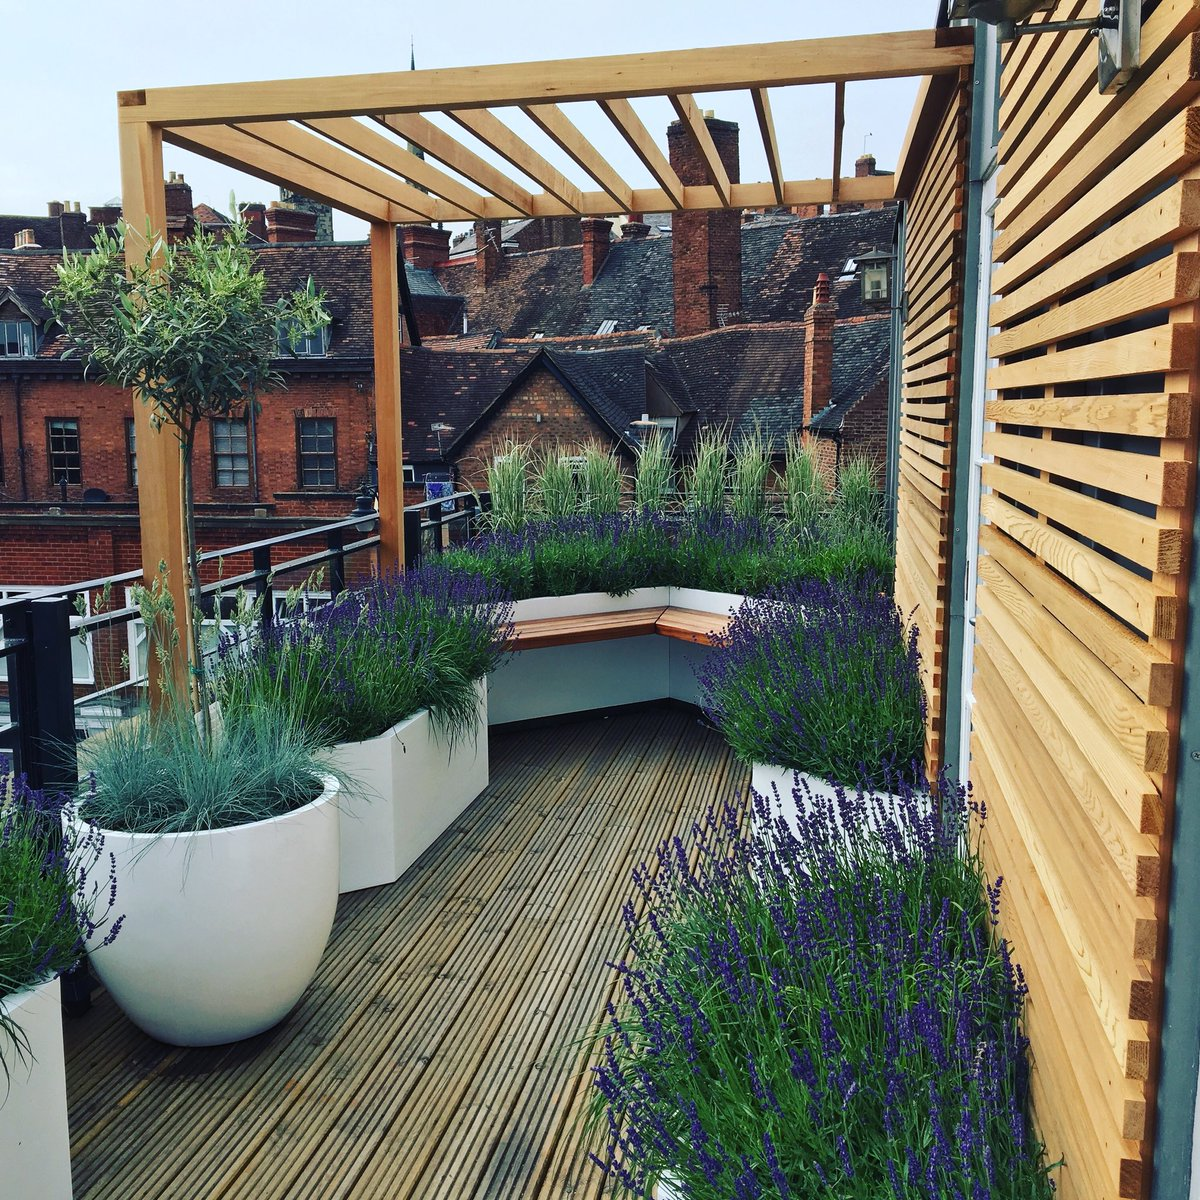 Paul Richards On Twitter Our Tiny Roof Terrace Garden In